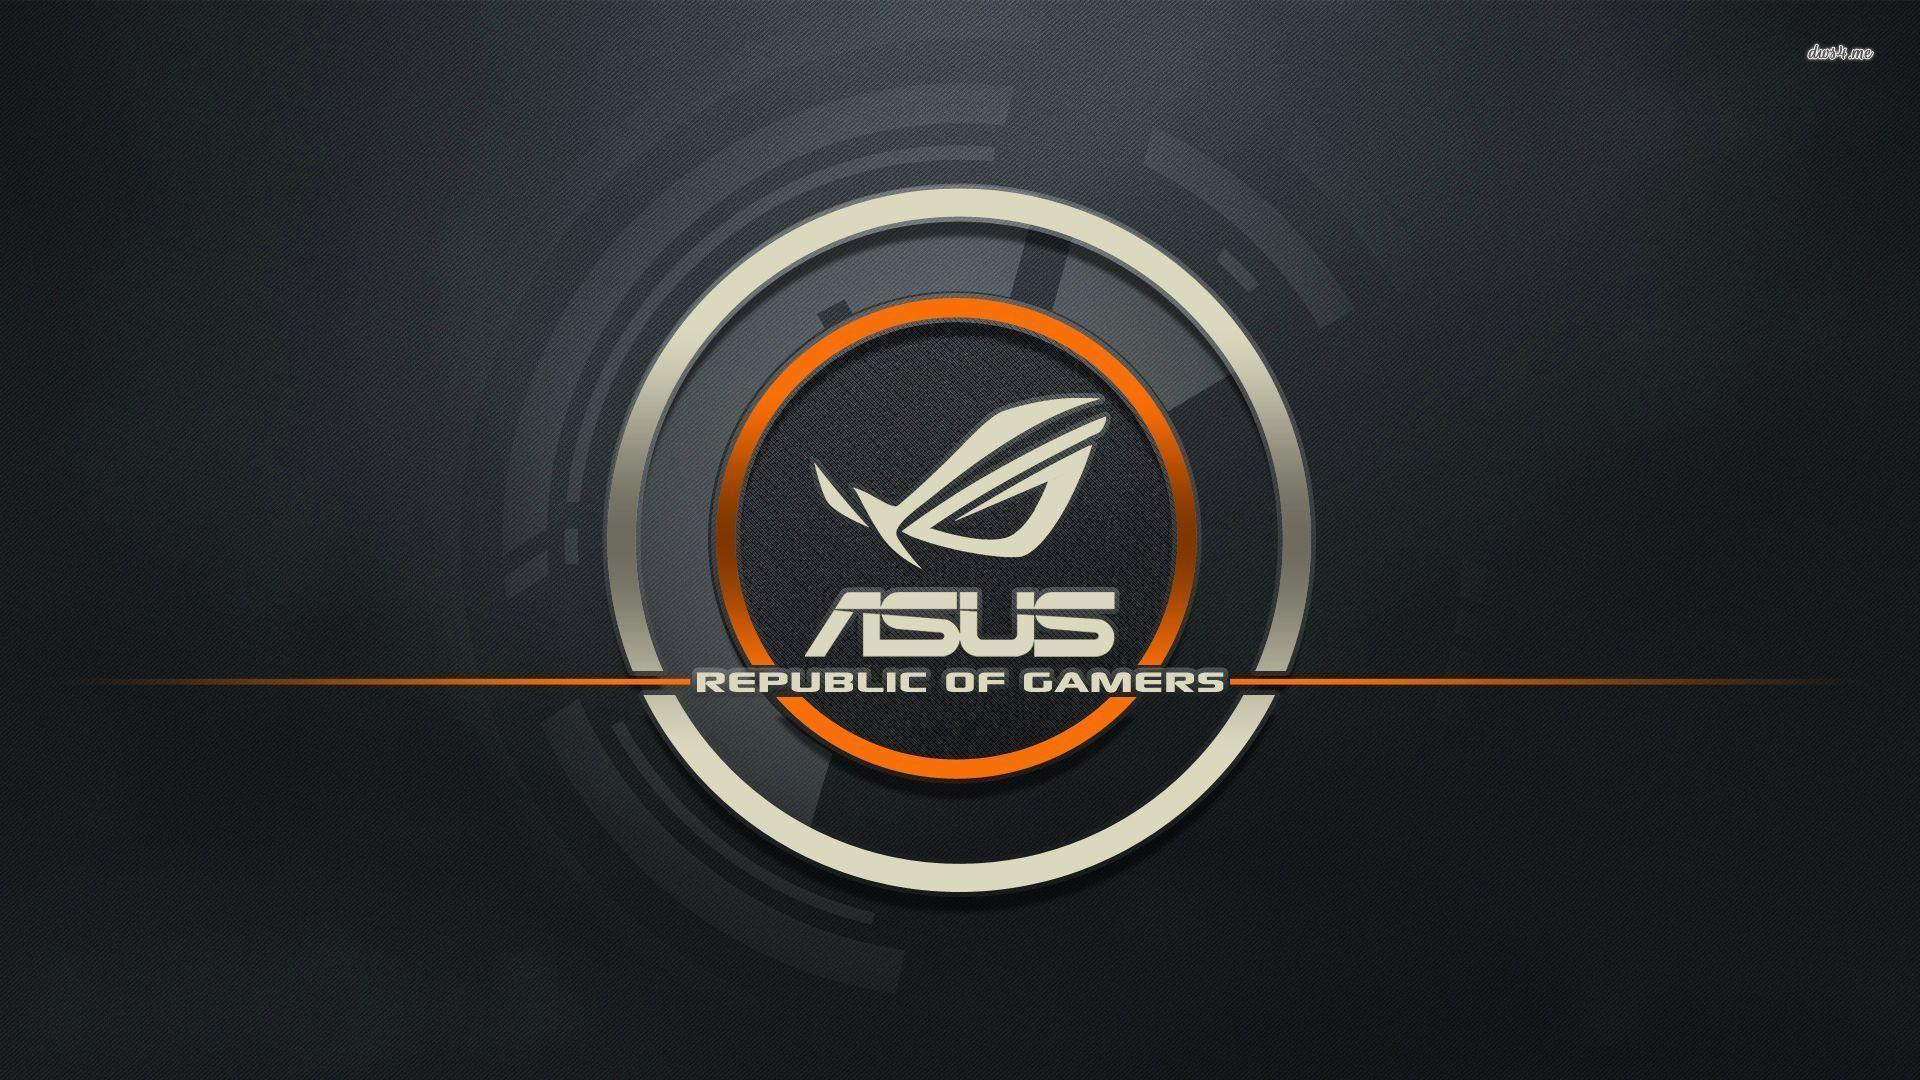 Asus Rog Wallpaper: Republic Of Gamers Wallpapers